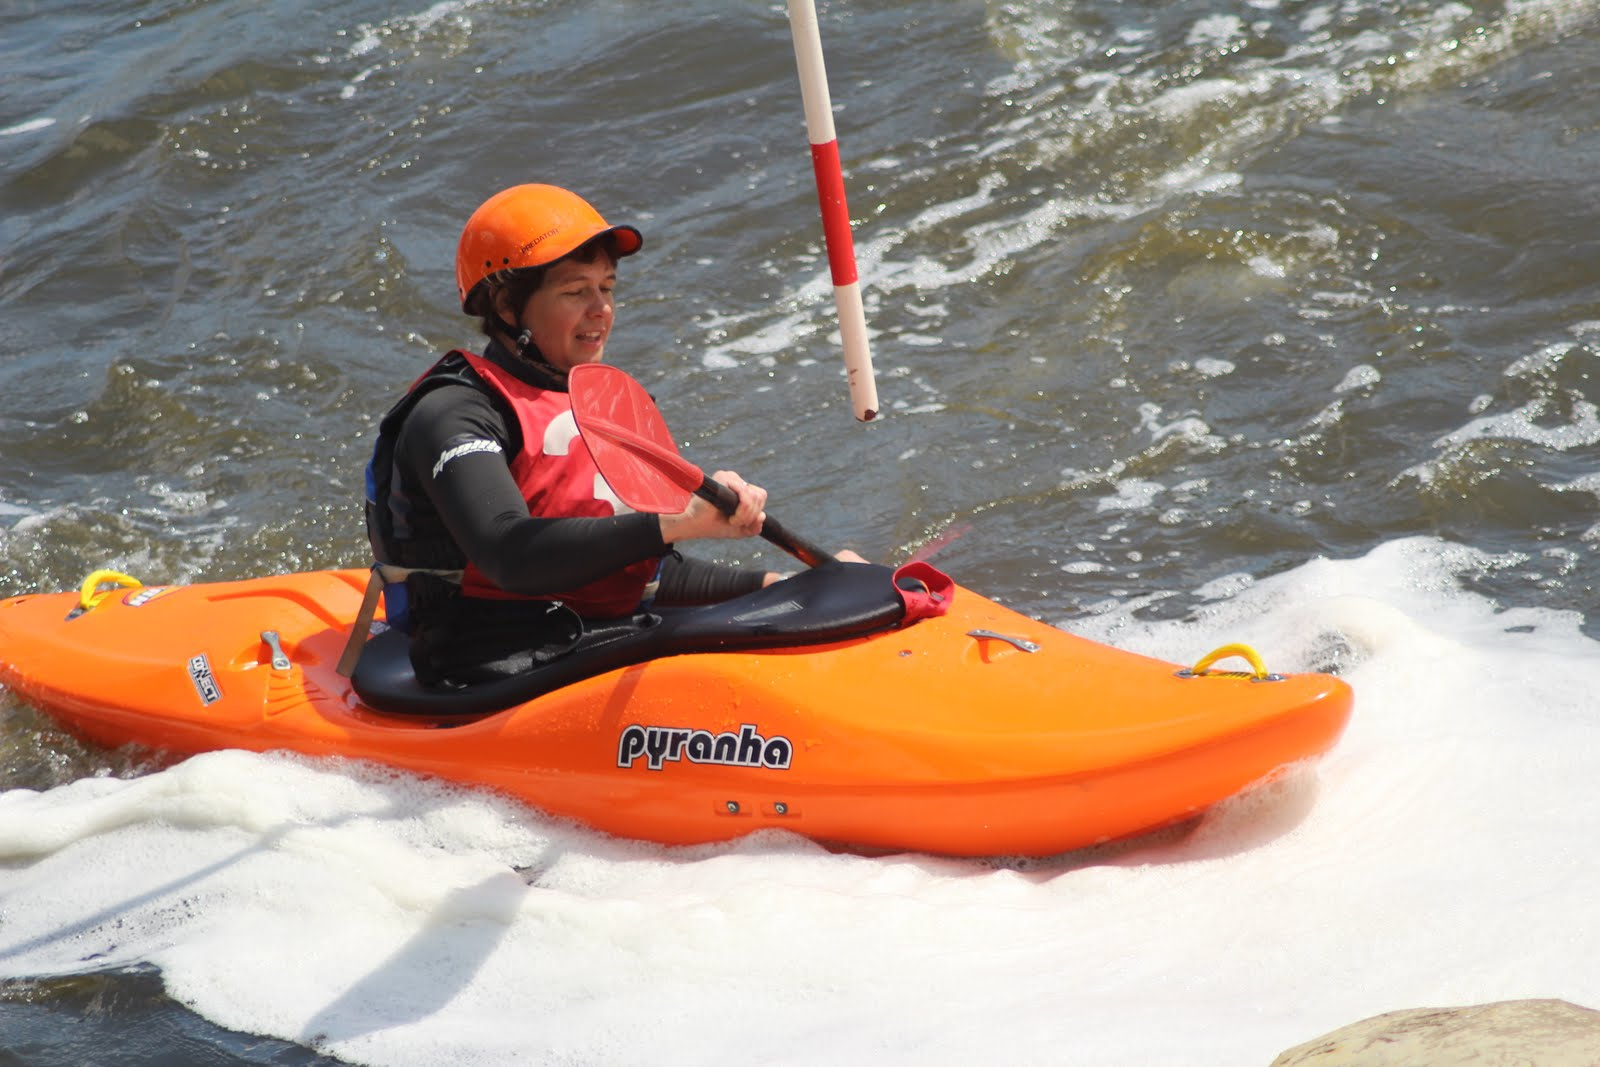 At the white water centre